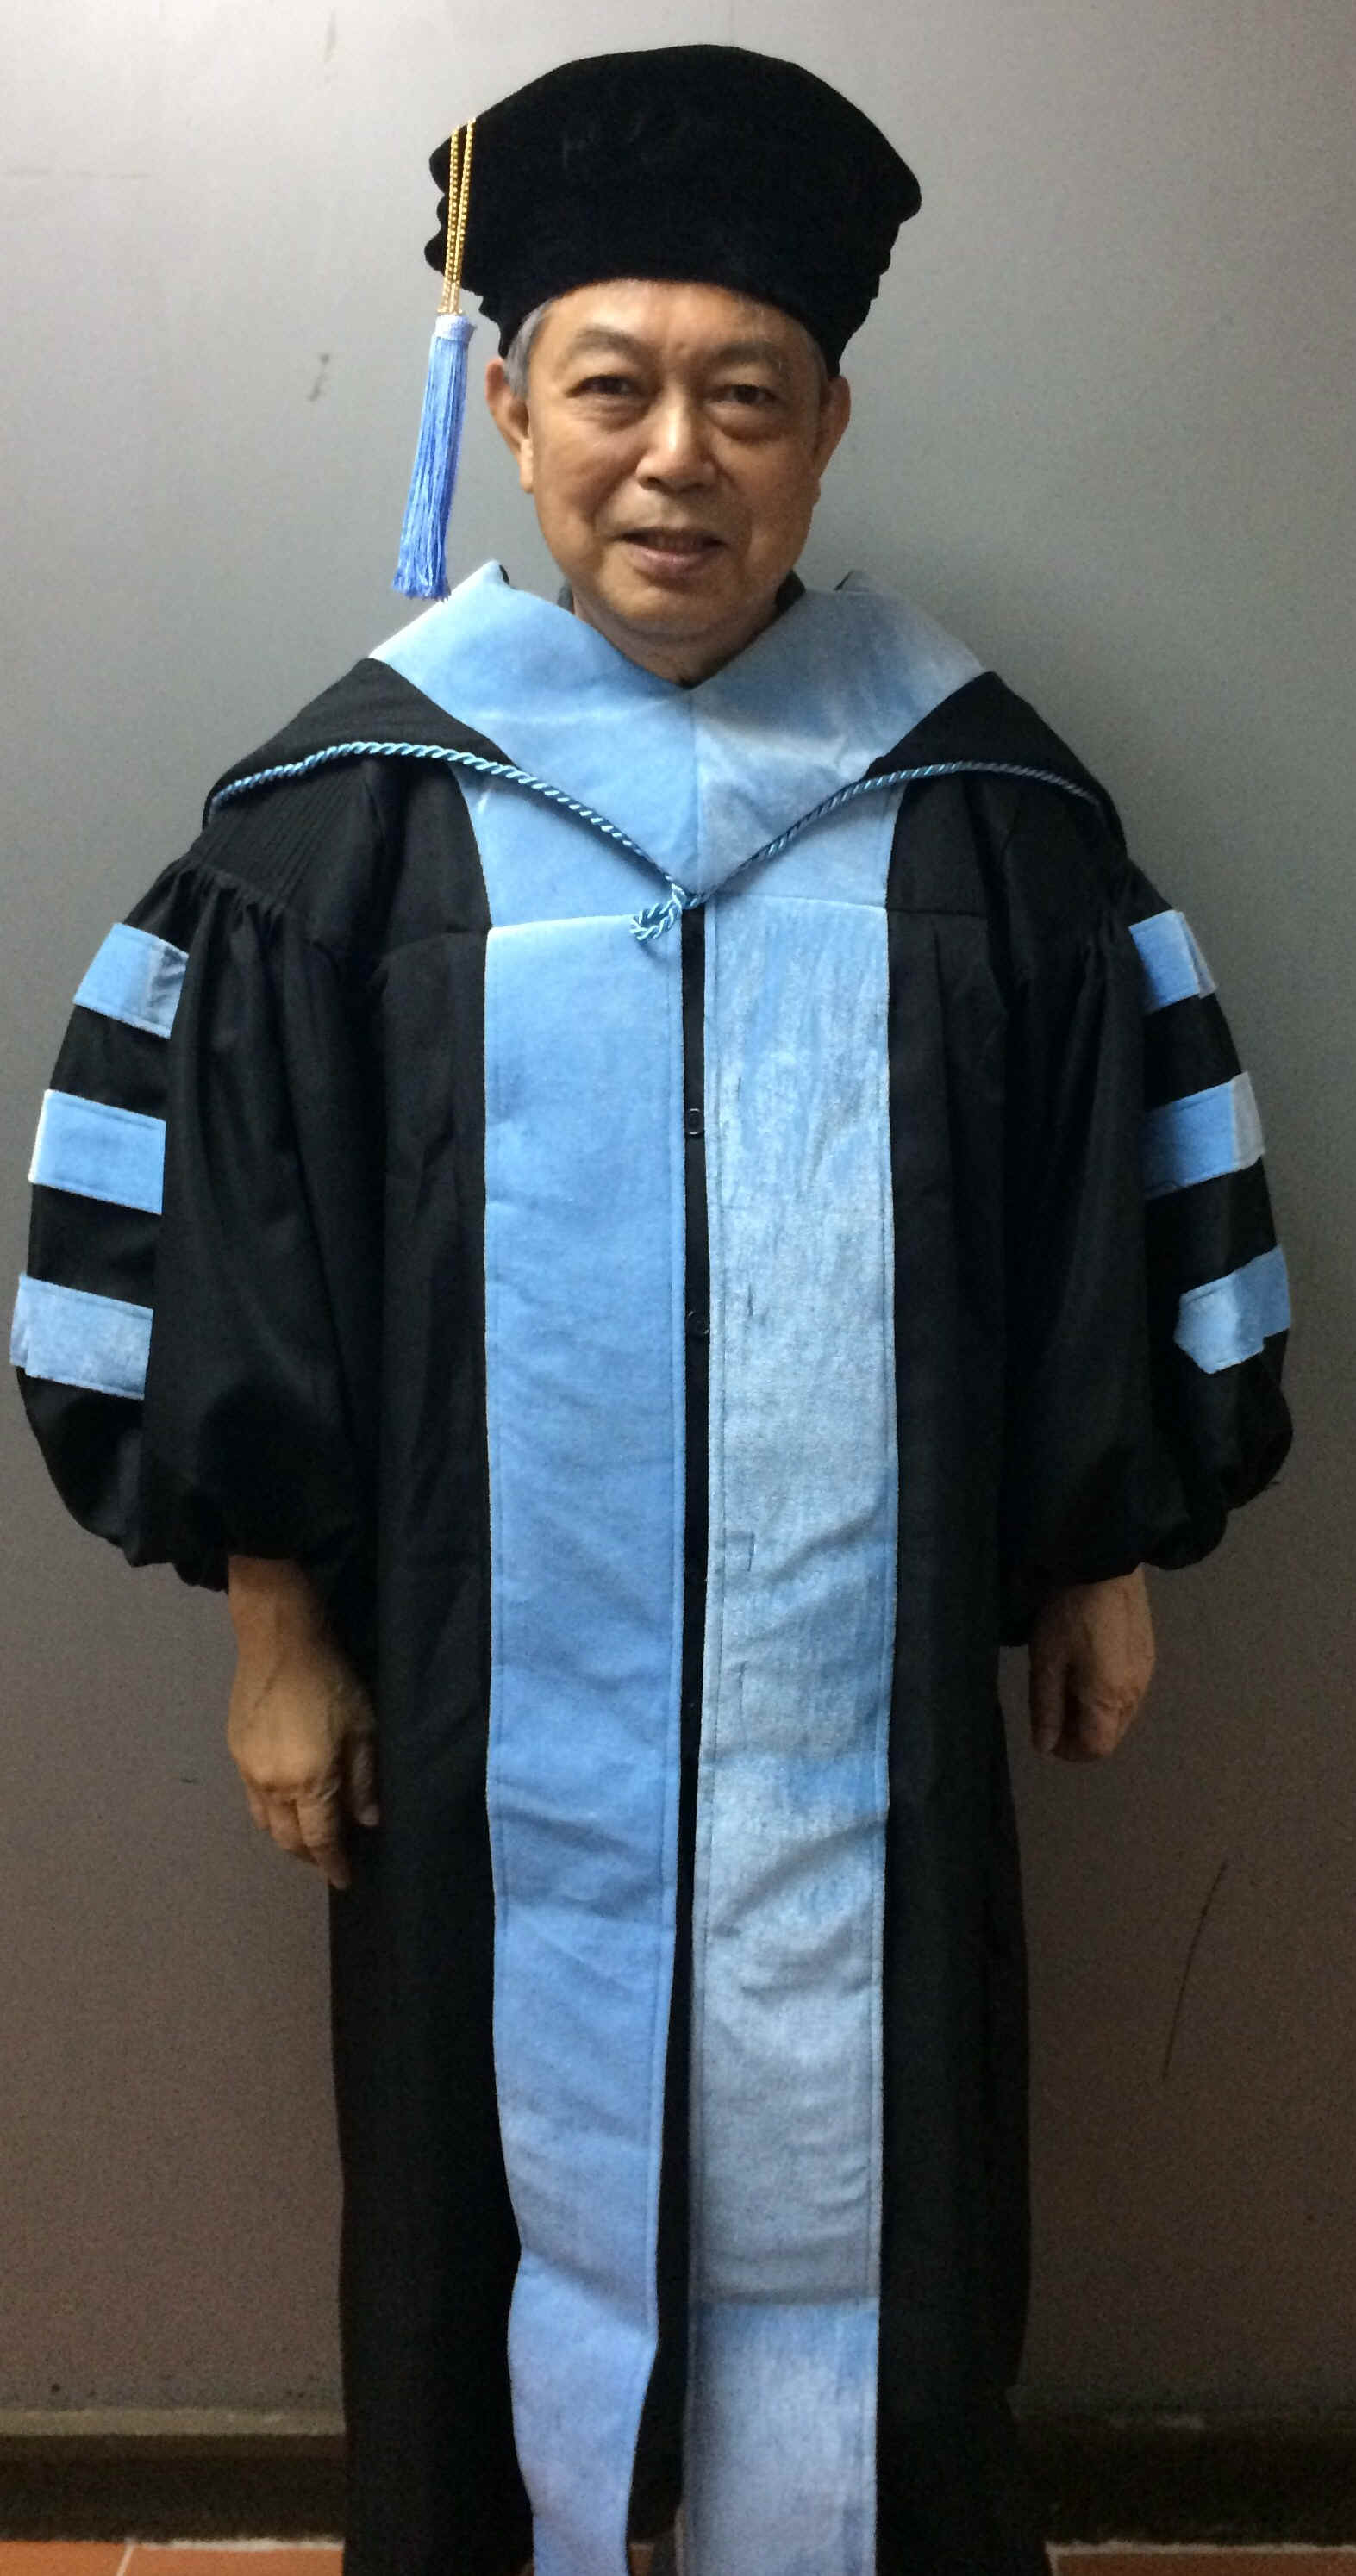 Graduation Gowns (Toga) for Hire or Sale from Filmo Singapore